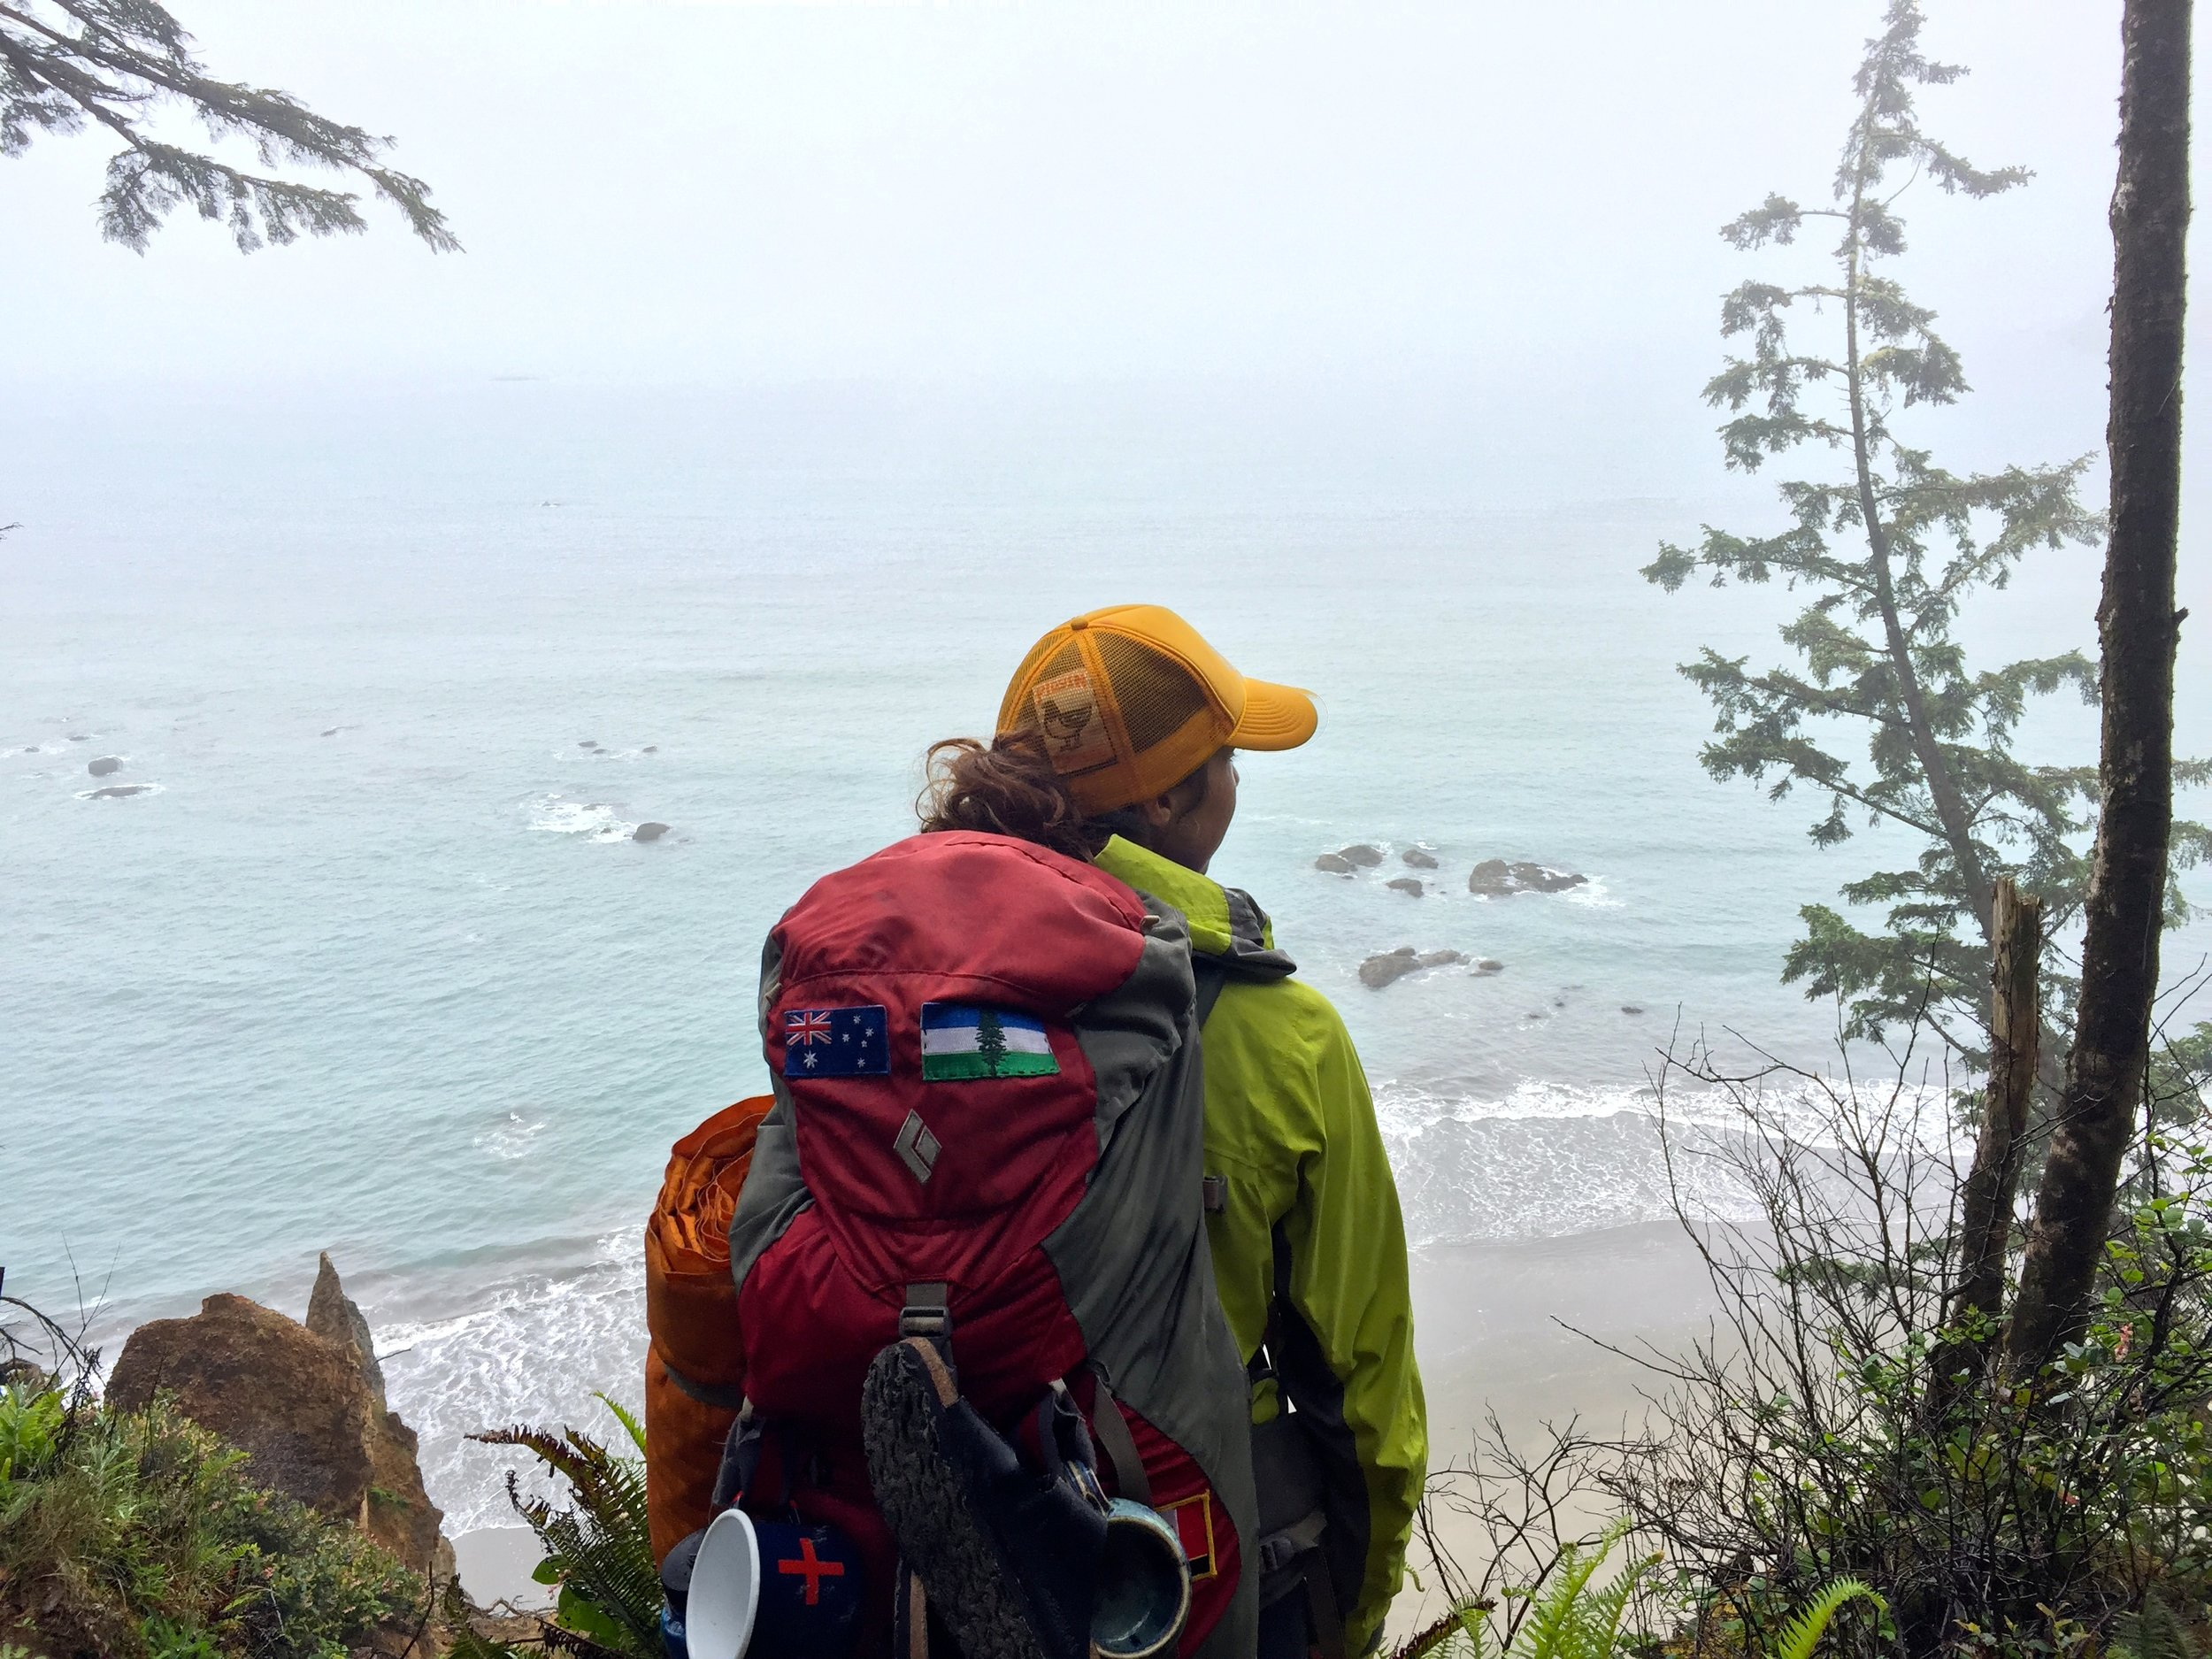 Backpacking at Second Beach in Olympic National Park